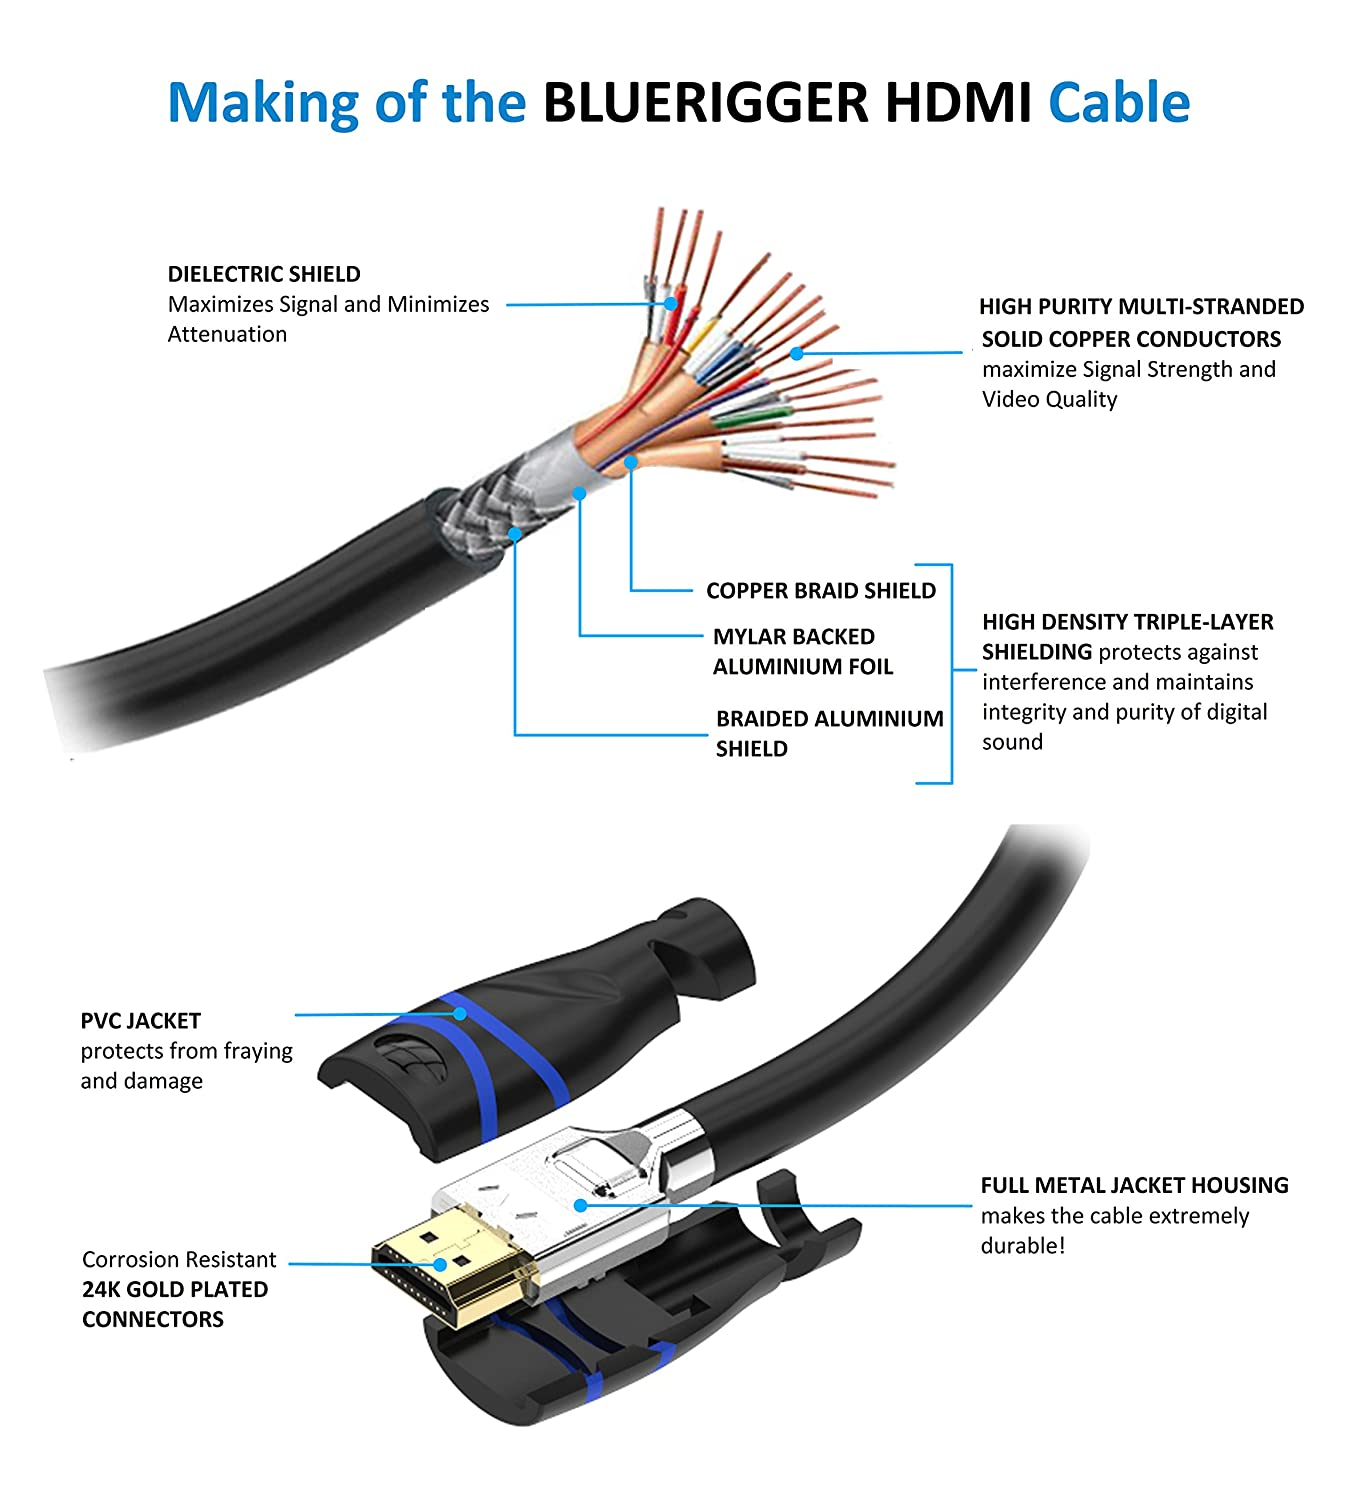 Hdmi Cable Wiring Diagram: Amazon.com: BlueRigger In-Wall High Speed HDMI Cable - 15 Feet ,Design